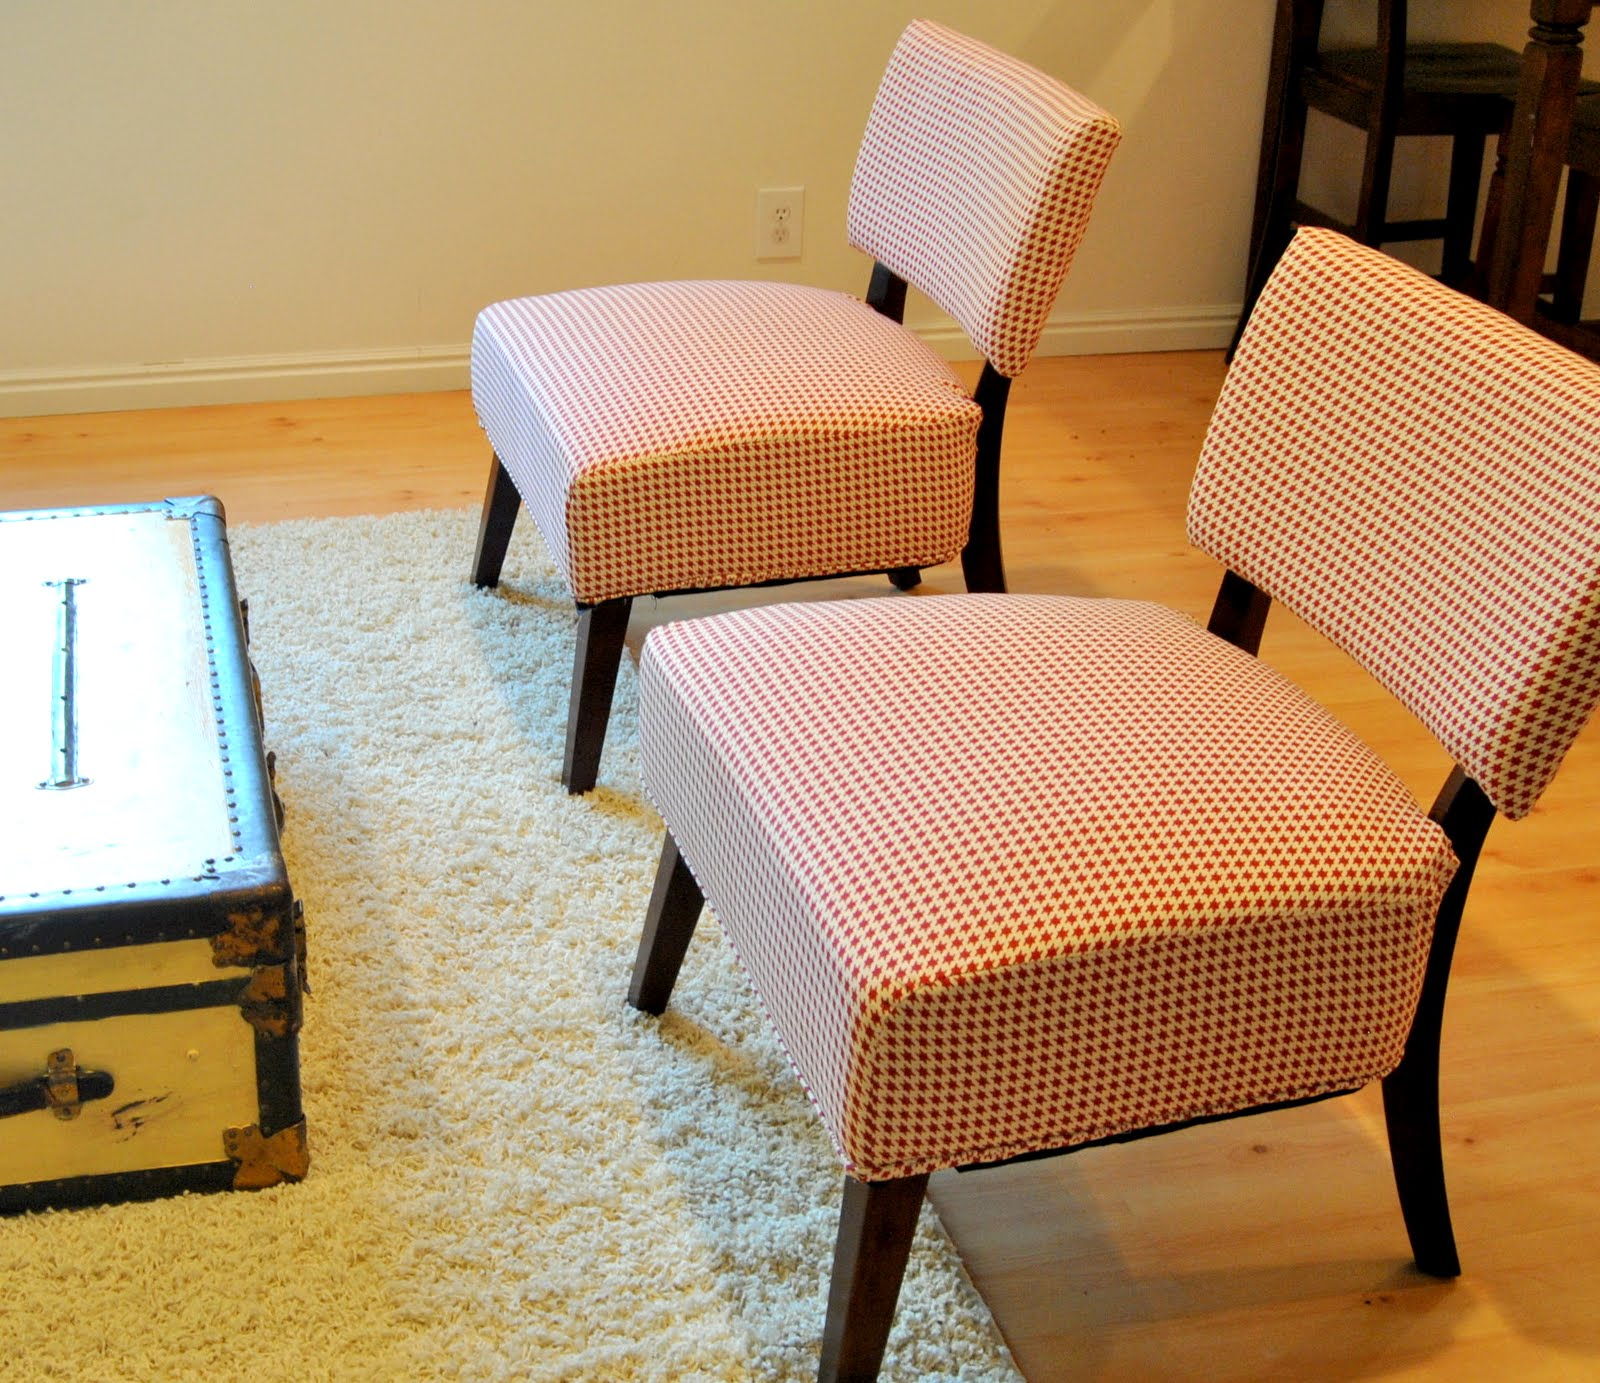 diy reupholster living room chair red and white curtains for maybe matilda reupholstered chairs aka the worst project ever